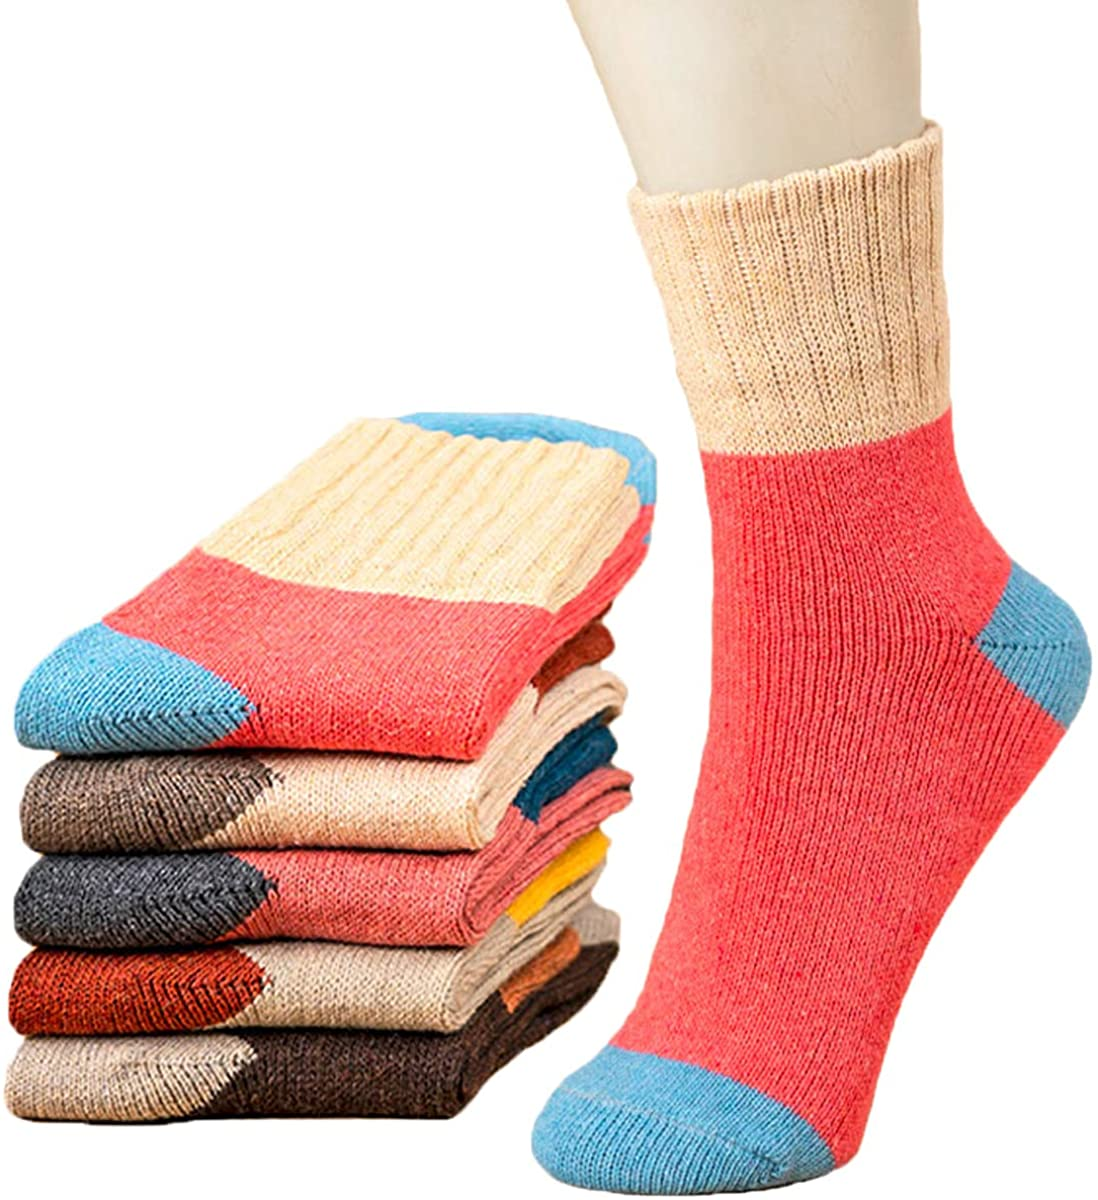 YZKKE 5 Pairs Womens Knit Warm Casual Wool Crew Winter Socks Gifts